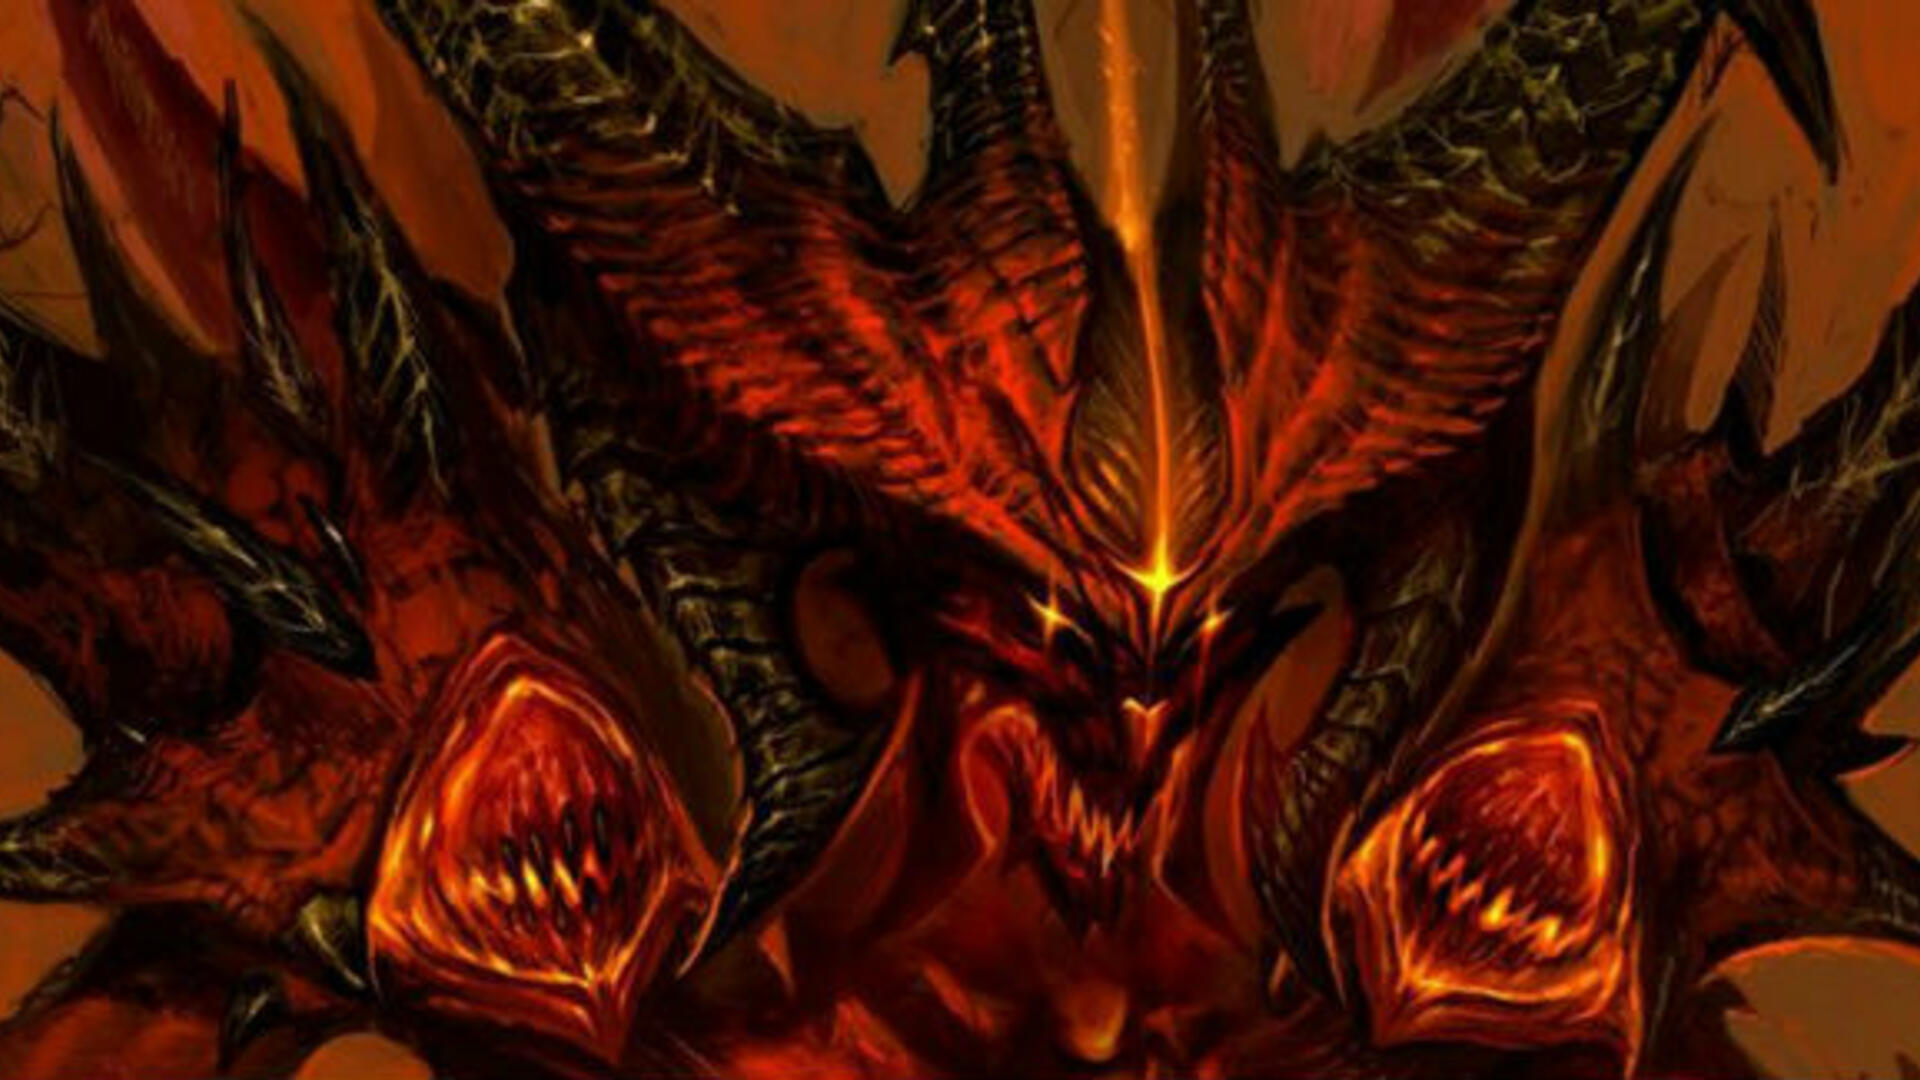 Diablo 3 Isn't Coming to Nintendo Switch, and Maybe We Should Calm Down a Bit